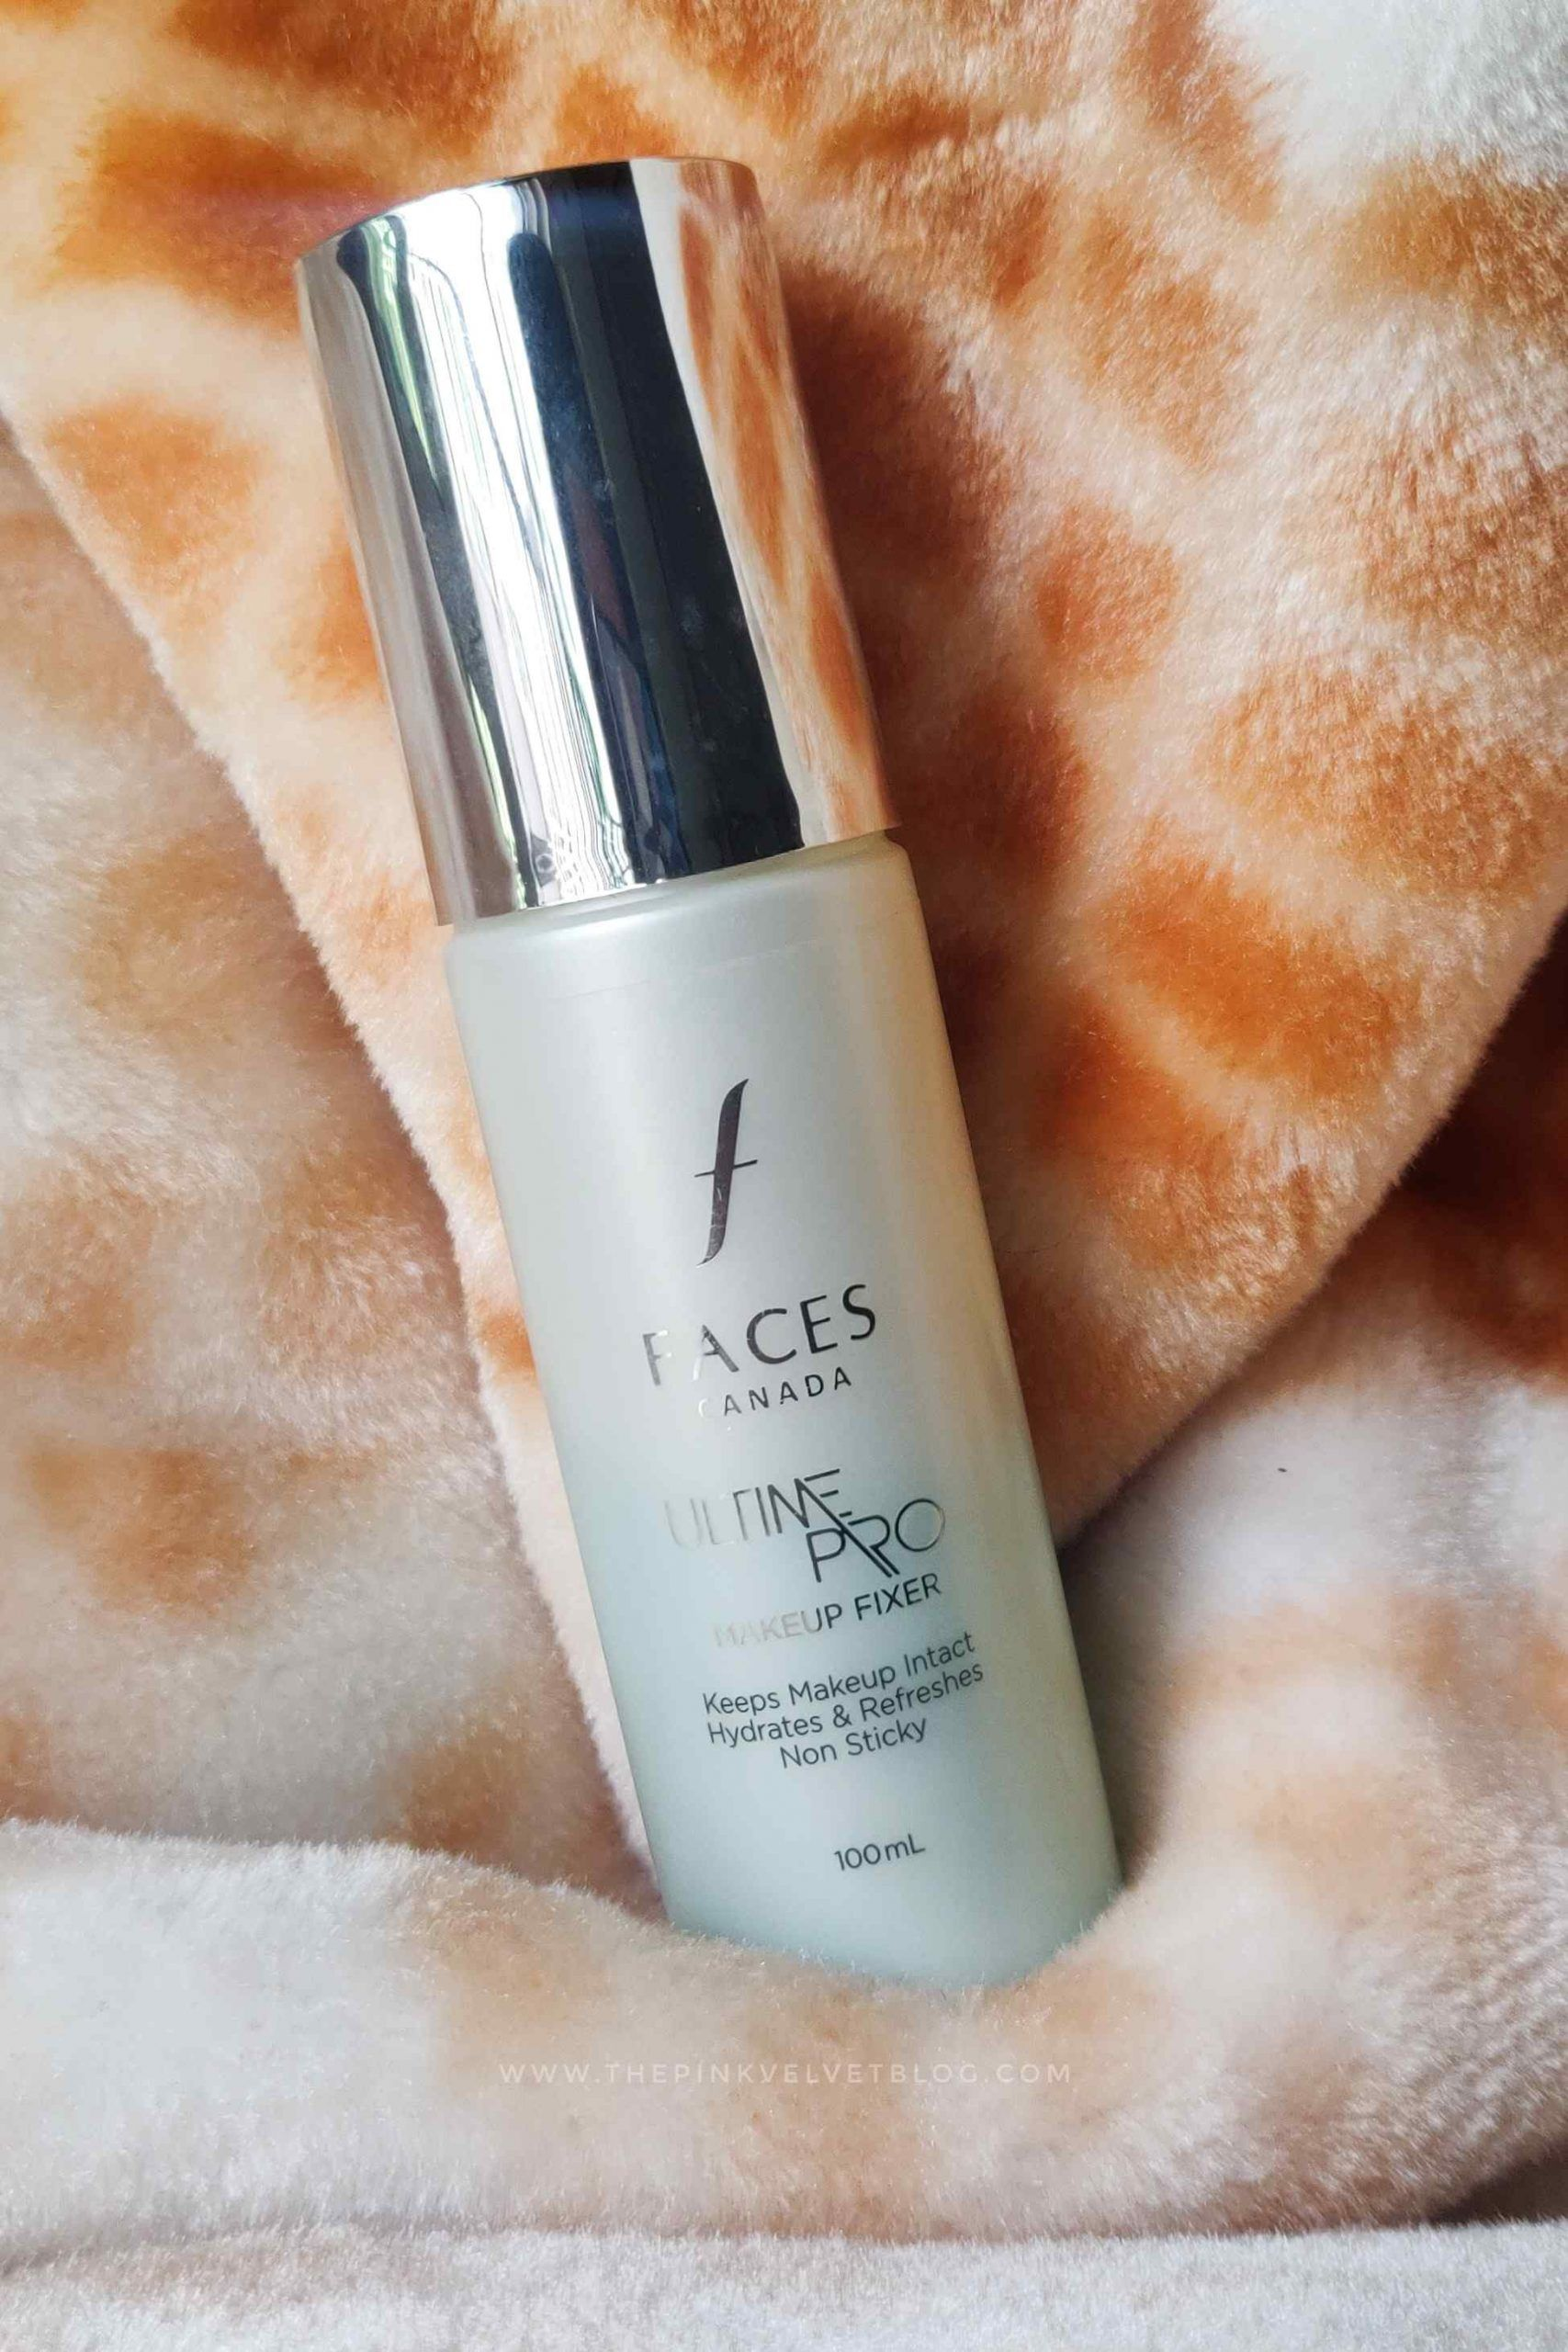 FACES Ultime Pro Makeup Fixer Review The Pink Velvet